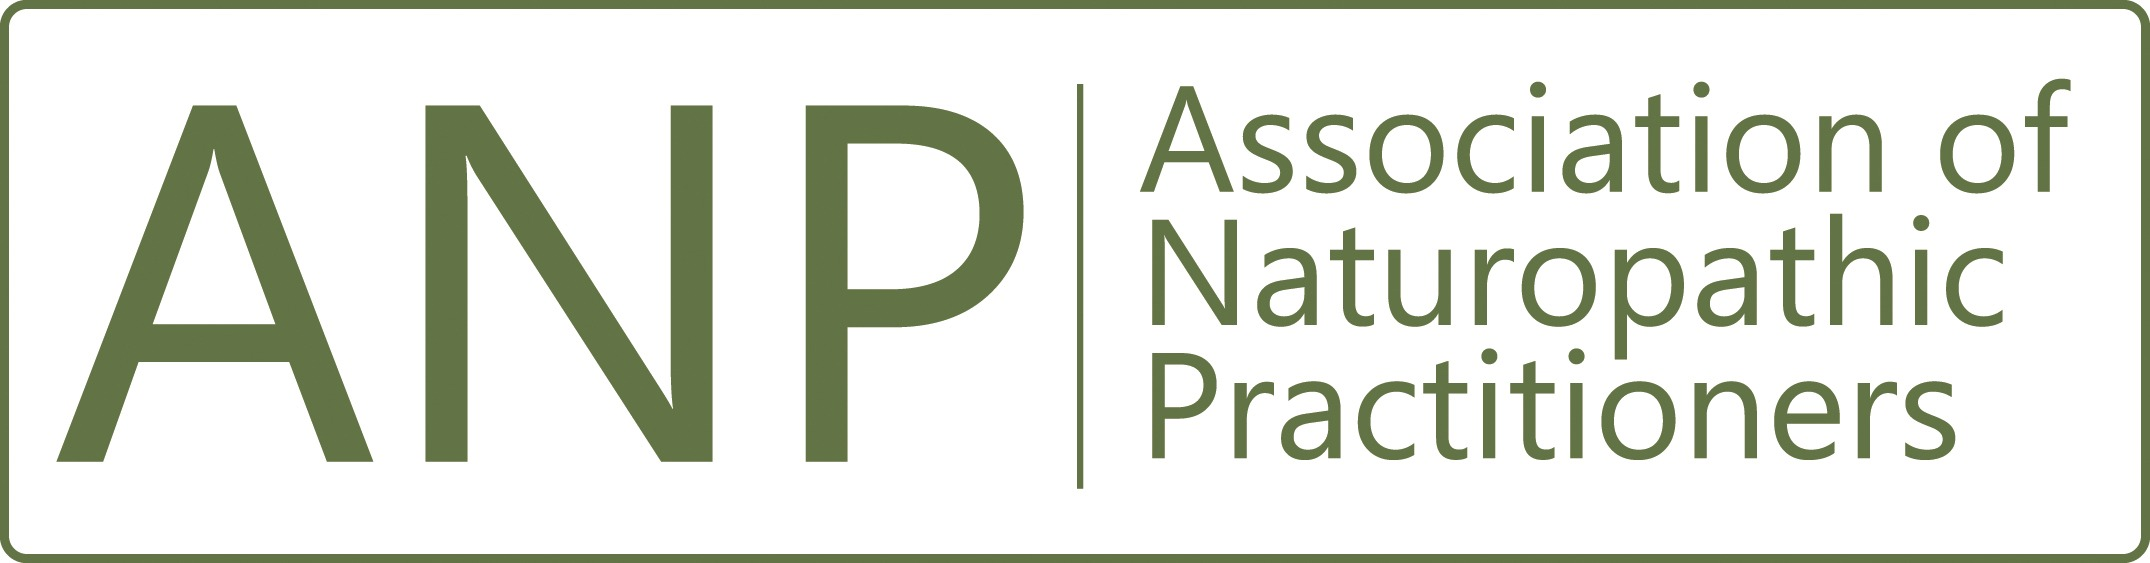 Cookery Course ANP Accreditation